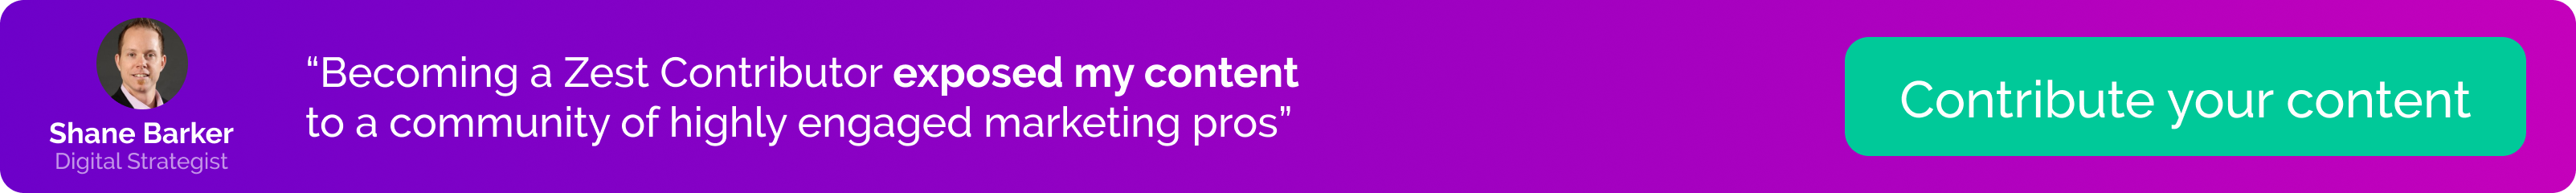 """Shane Barker, """"Becoming a Zest Contributor exposed my content to a community of highly engaged marketing pros"""" banner (Contribute your content)"""